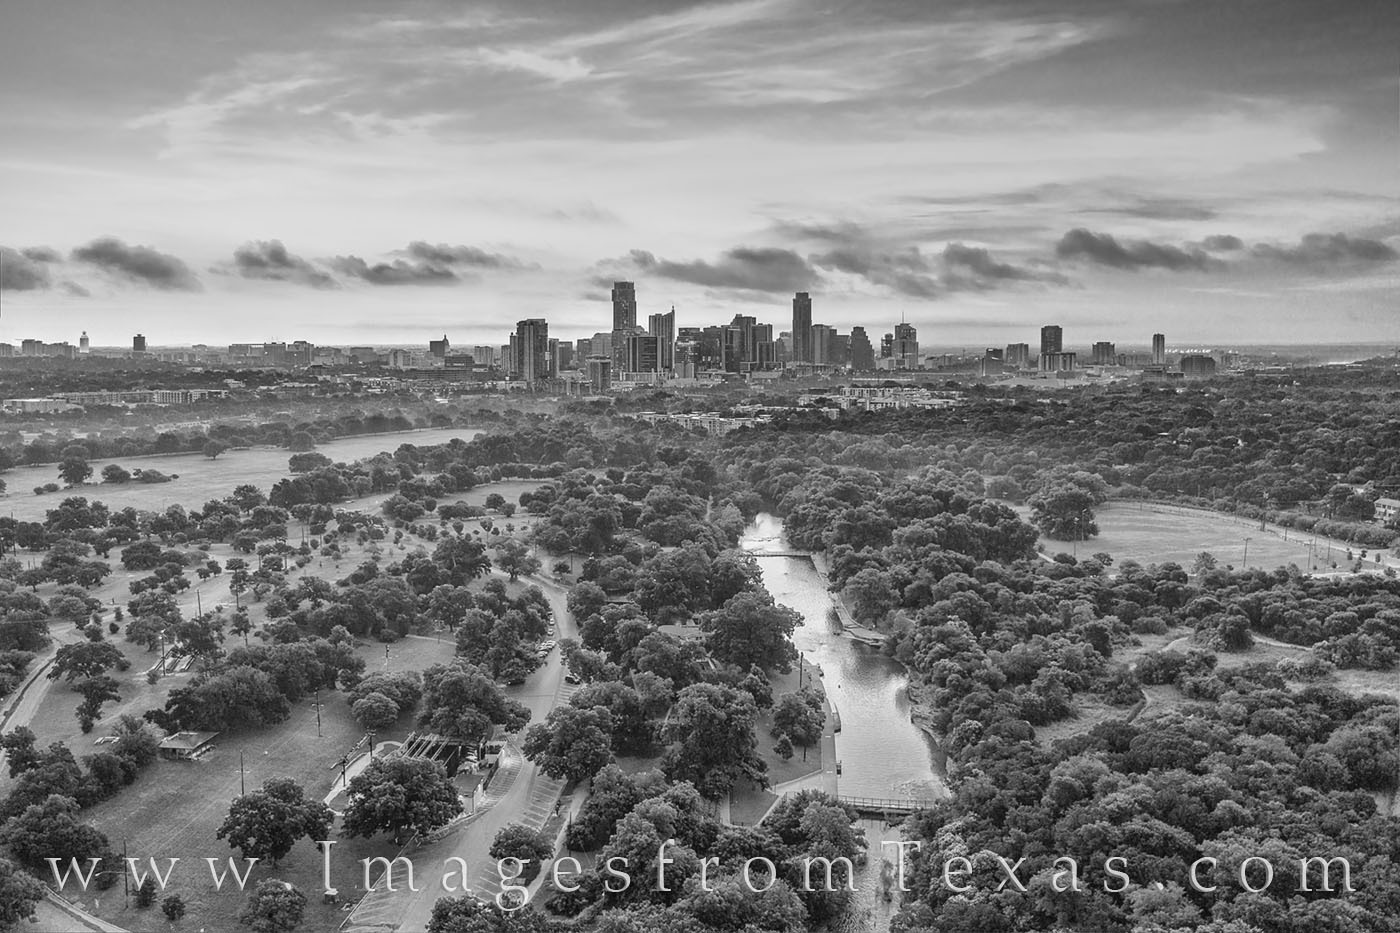 Barton Springs Pool rests far below in this black and white image taken with a high-flying drone. In the distance, the skyline...